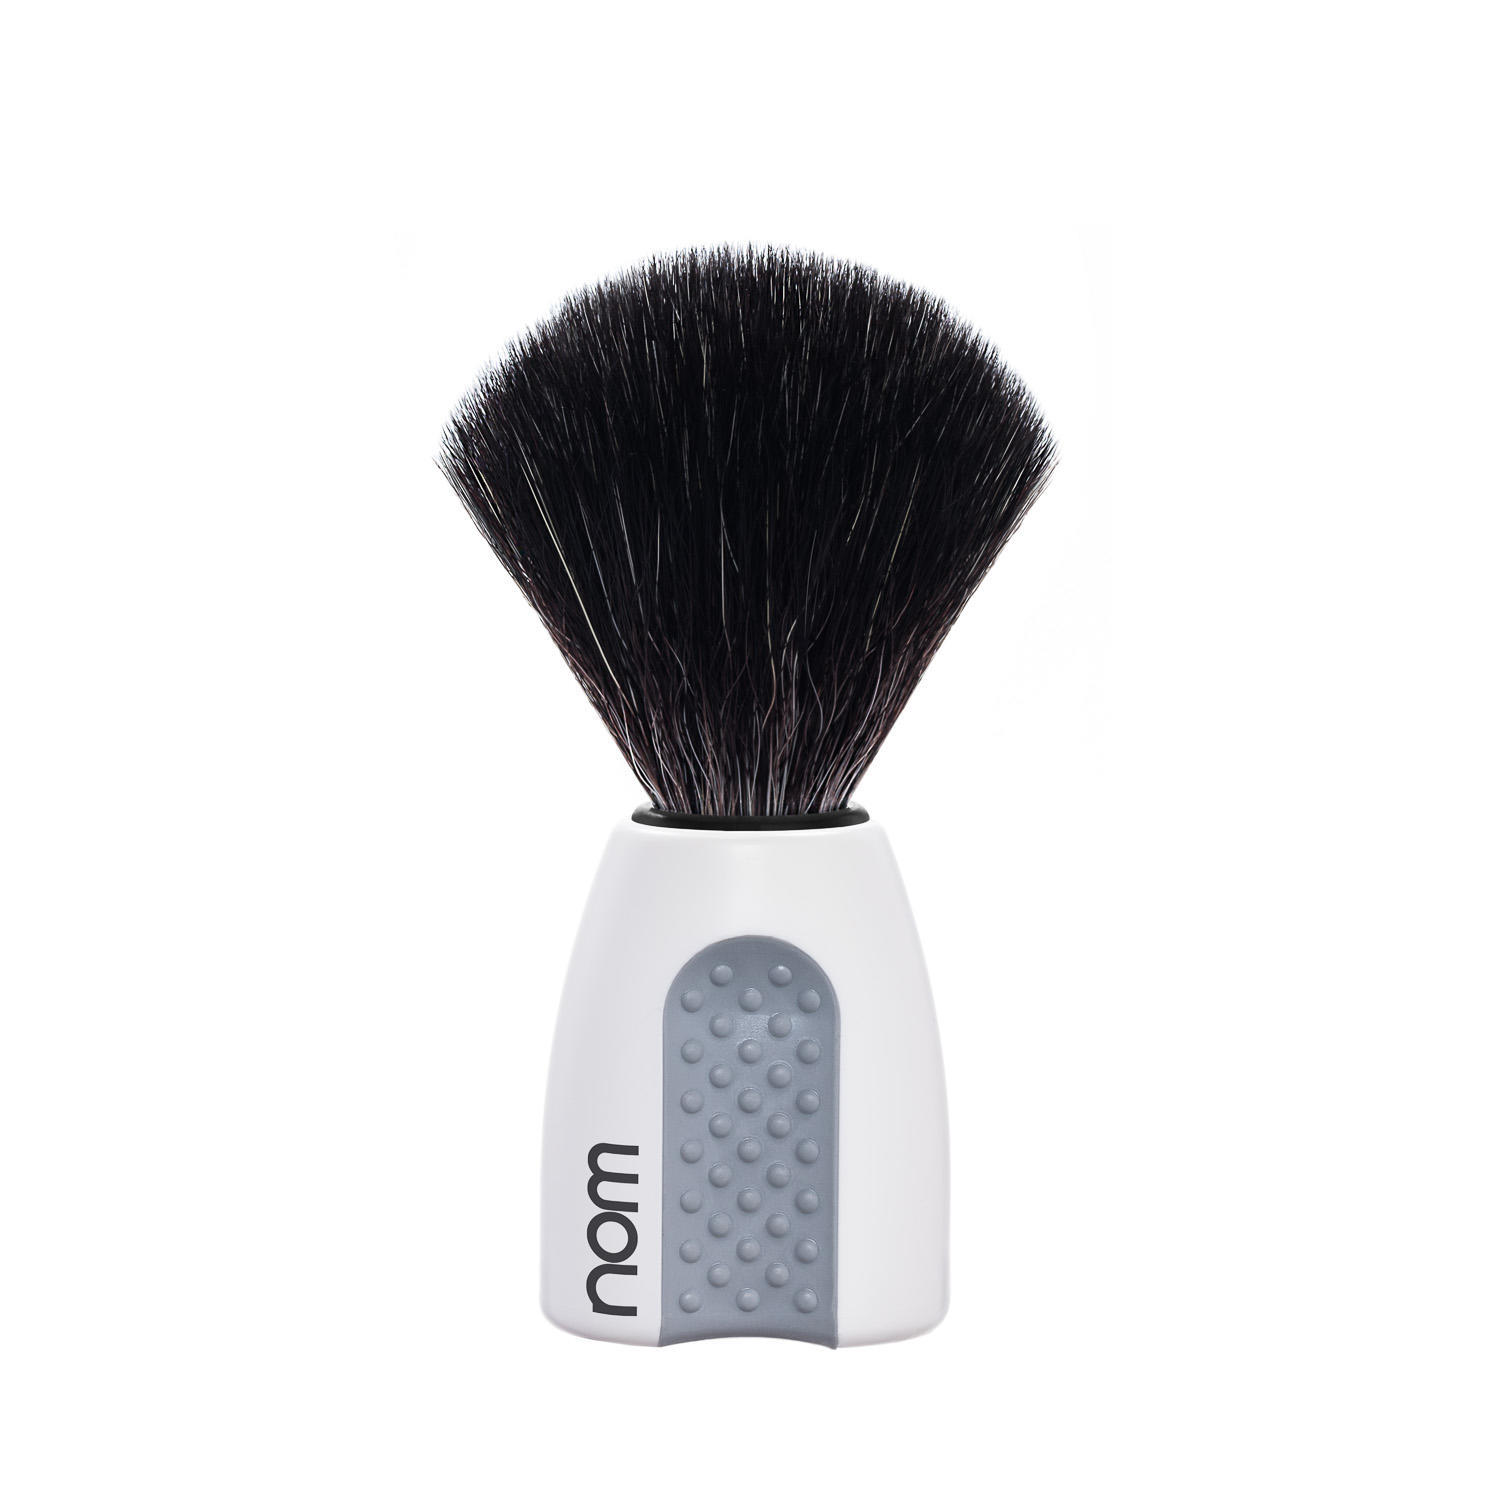 ERIK21WH NOM, ERIK White, Black Fibre Shaving Brush